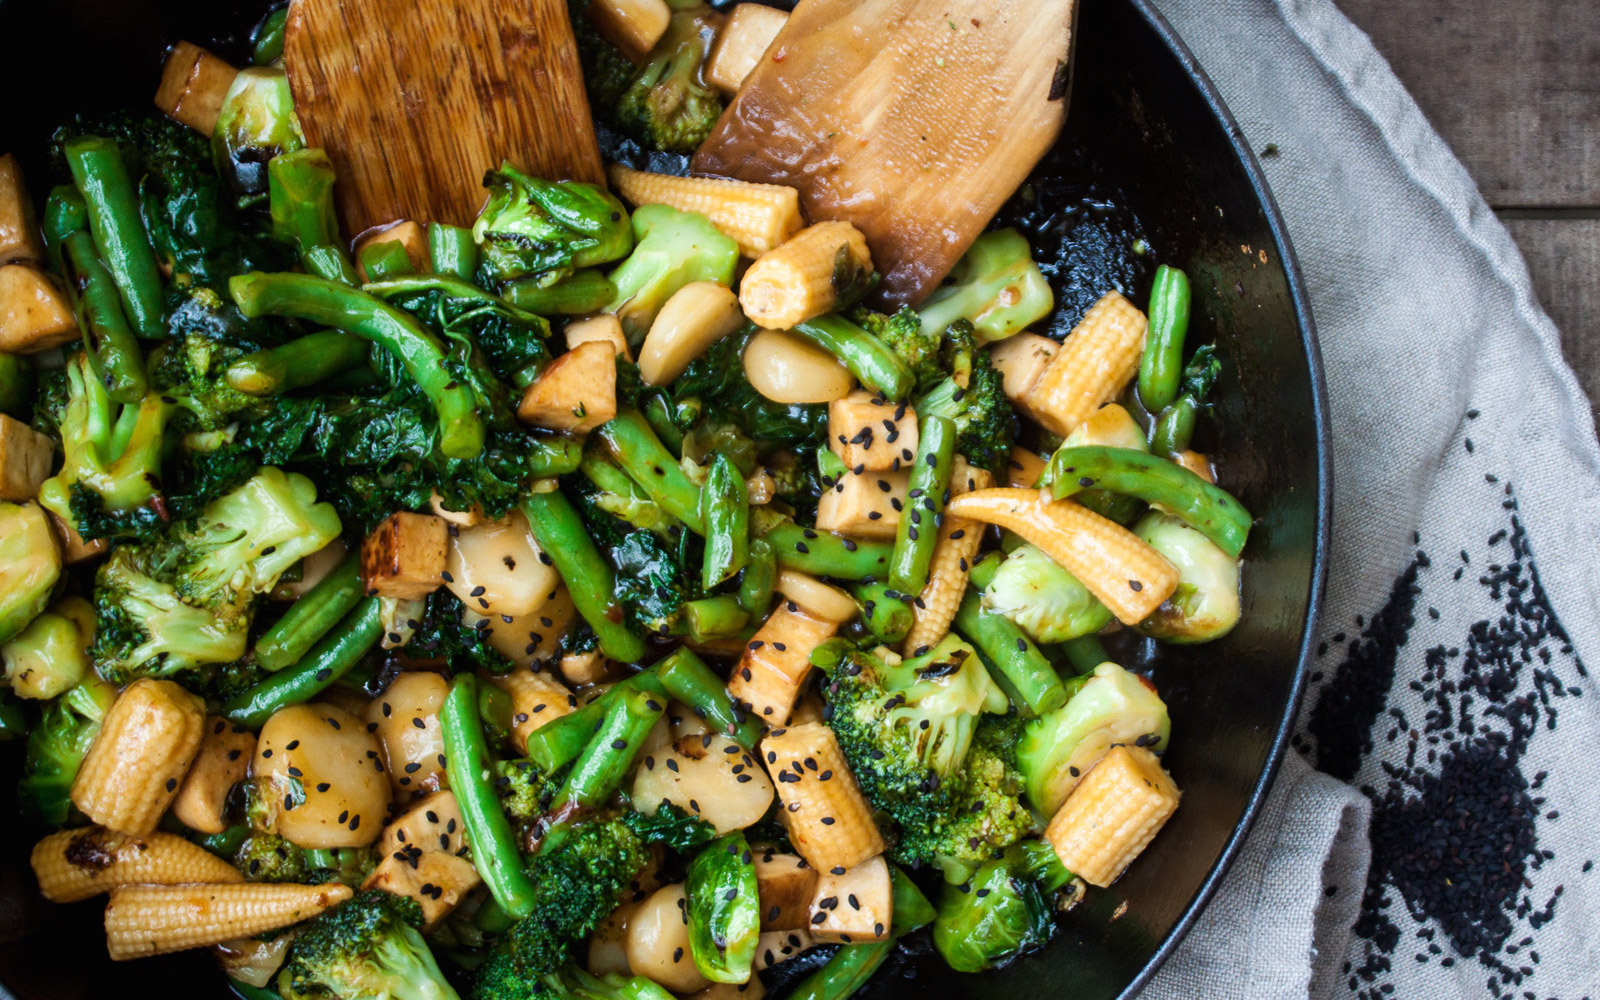 Black Sesame Vegetable and Tofu Stir-Fry With Chili Sauce